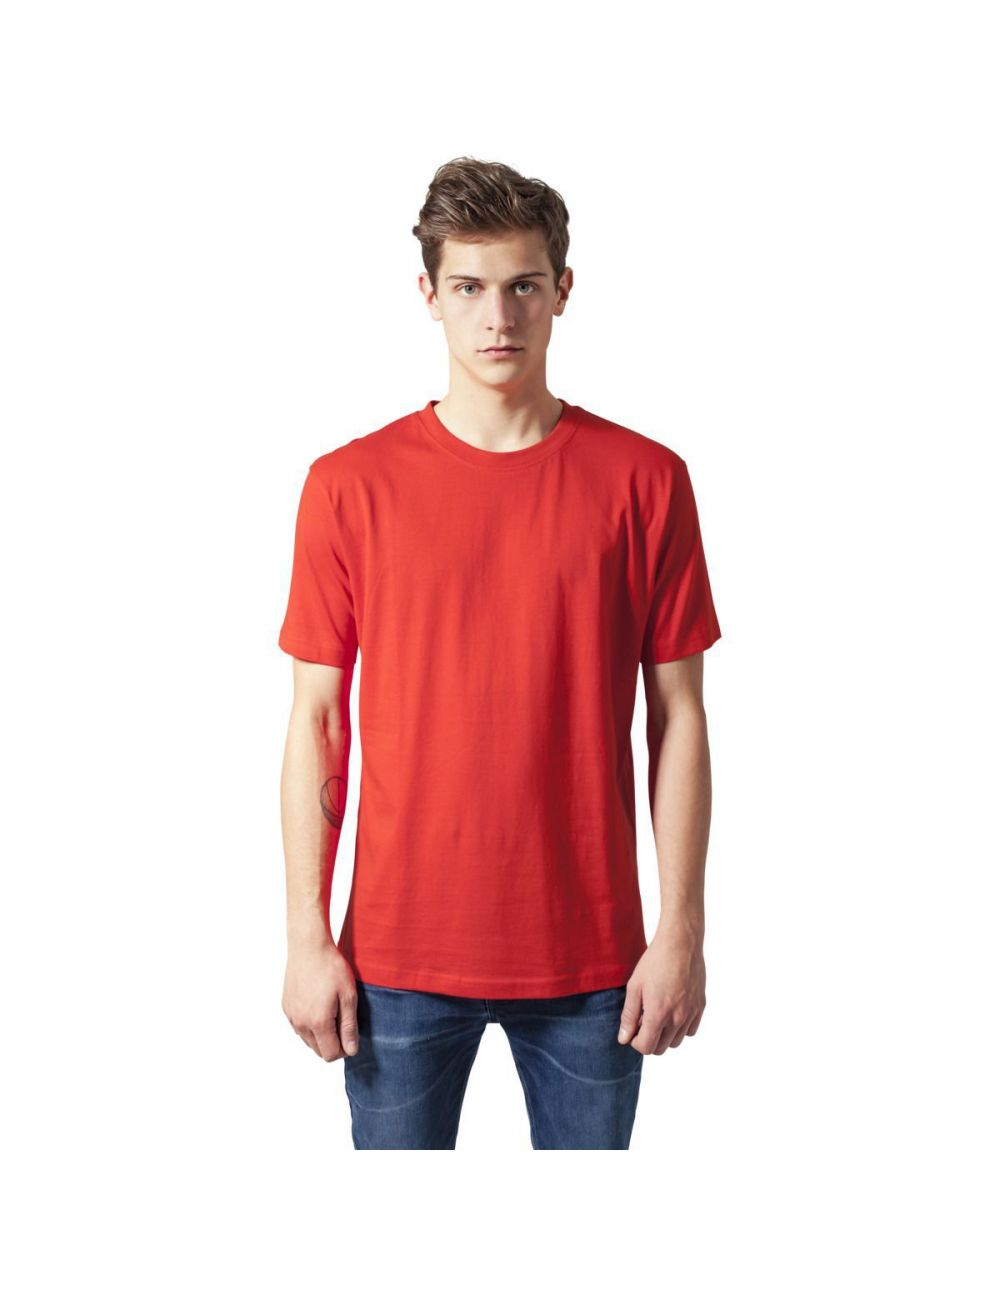 T-shirt col rond jersey uni